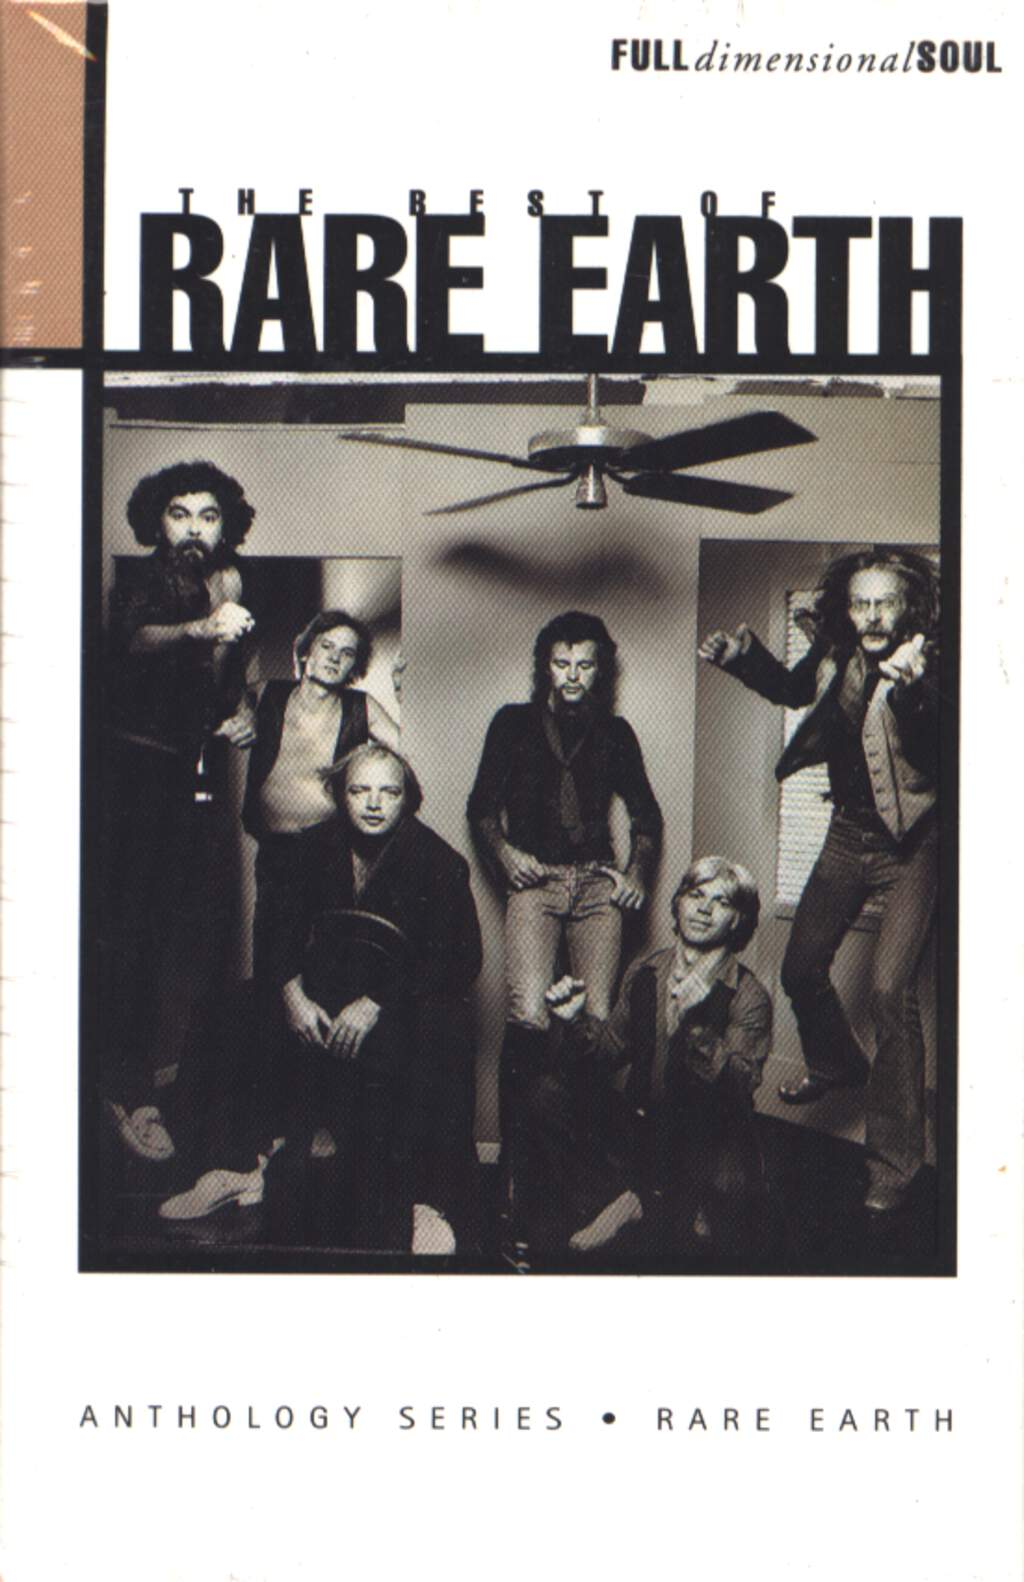 Rare Earth: The Best Of Rare Earth, Compact Cassette